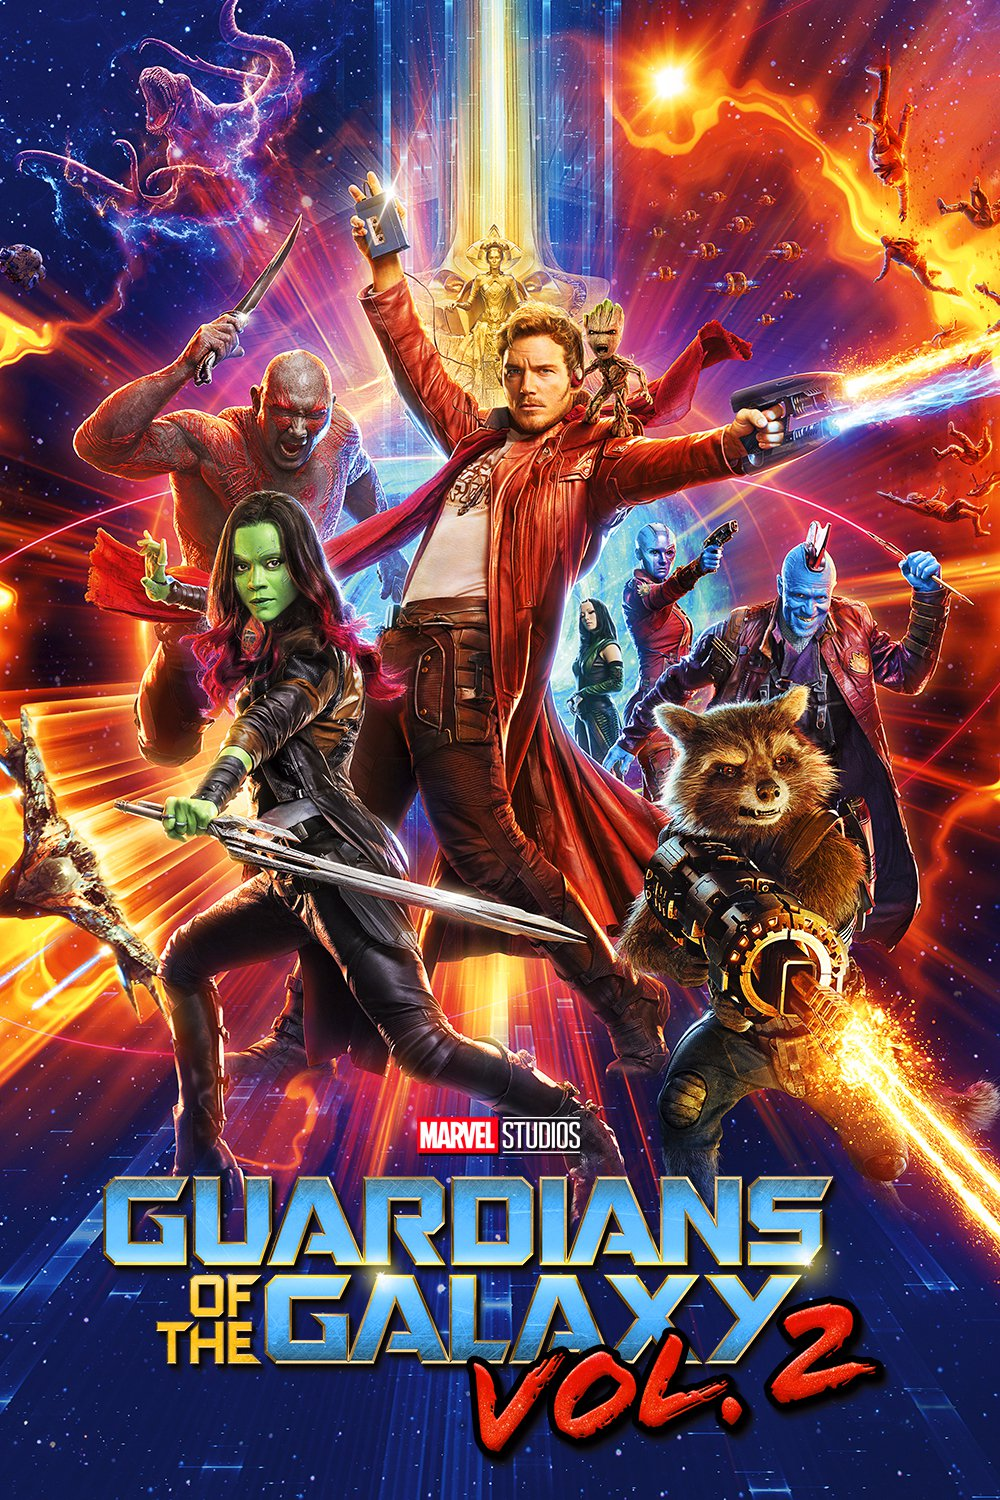 Guardians of the Galaxy Vol. 2, 2017